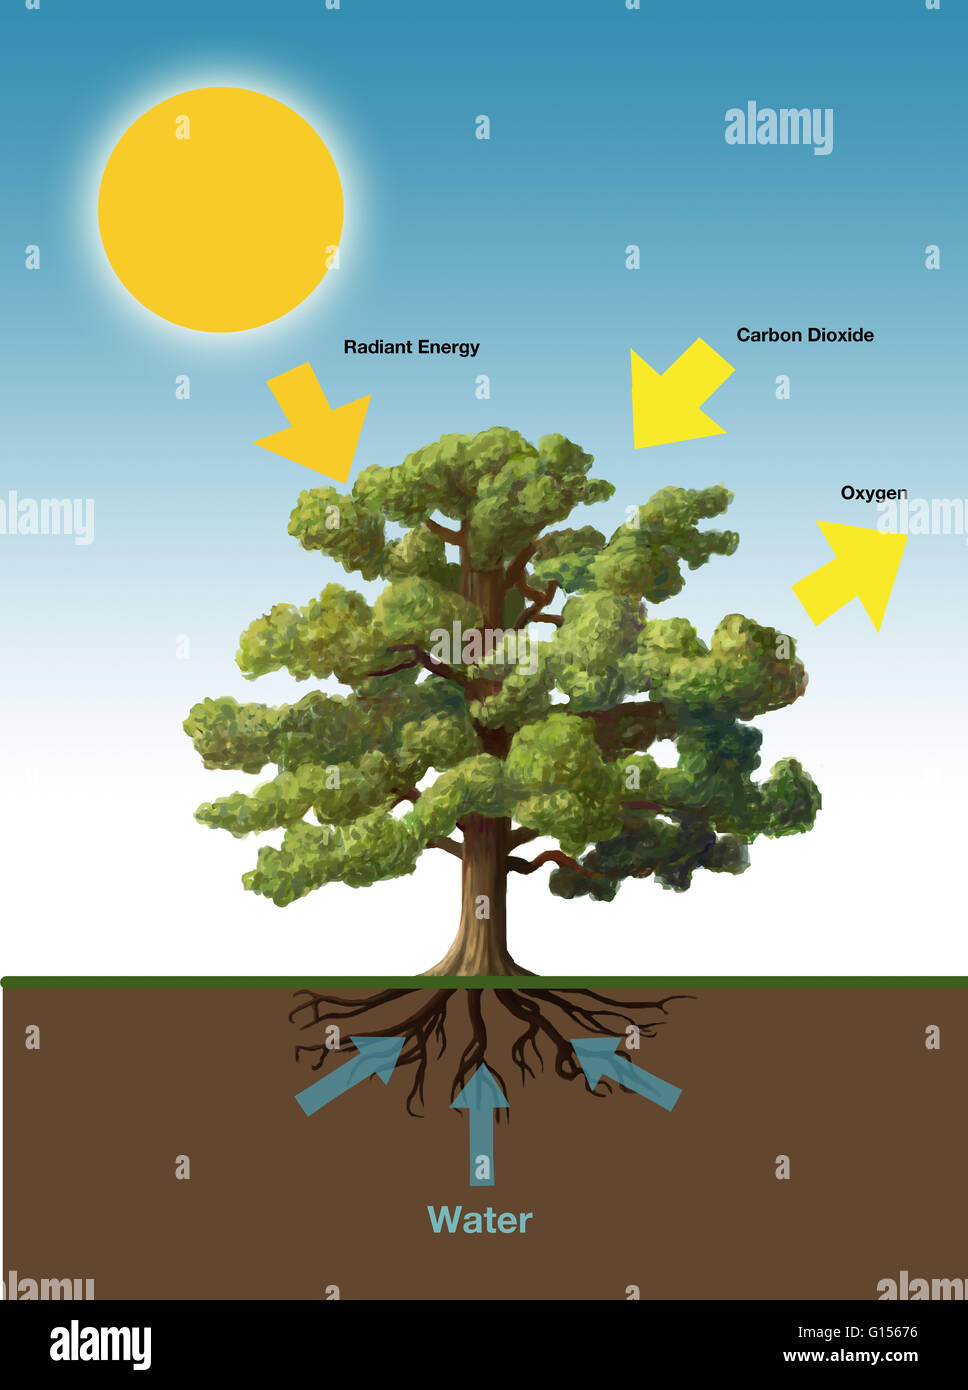 an analysis of photosynthesis in plants Photosynthesis essay is provided by us essay writers photosynthesis is the process through which green plants and other specific living organisms utilize light energy to convert water and carbon dioxide in to simple sugars.